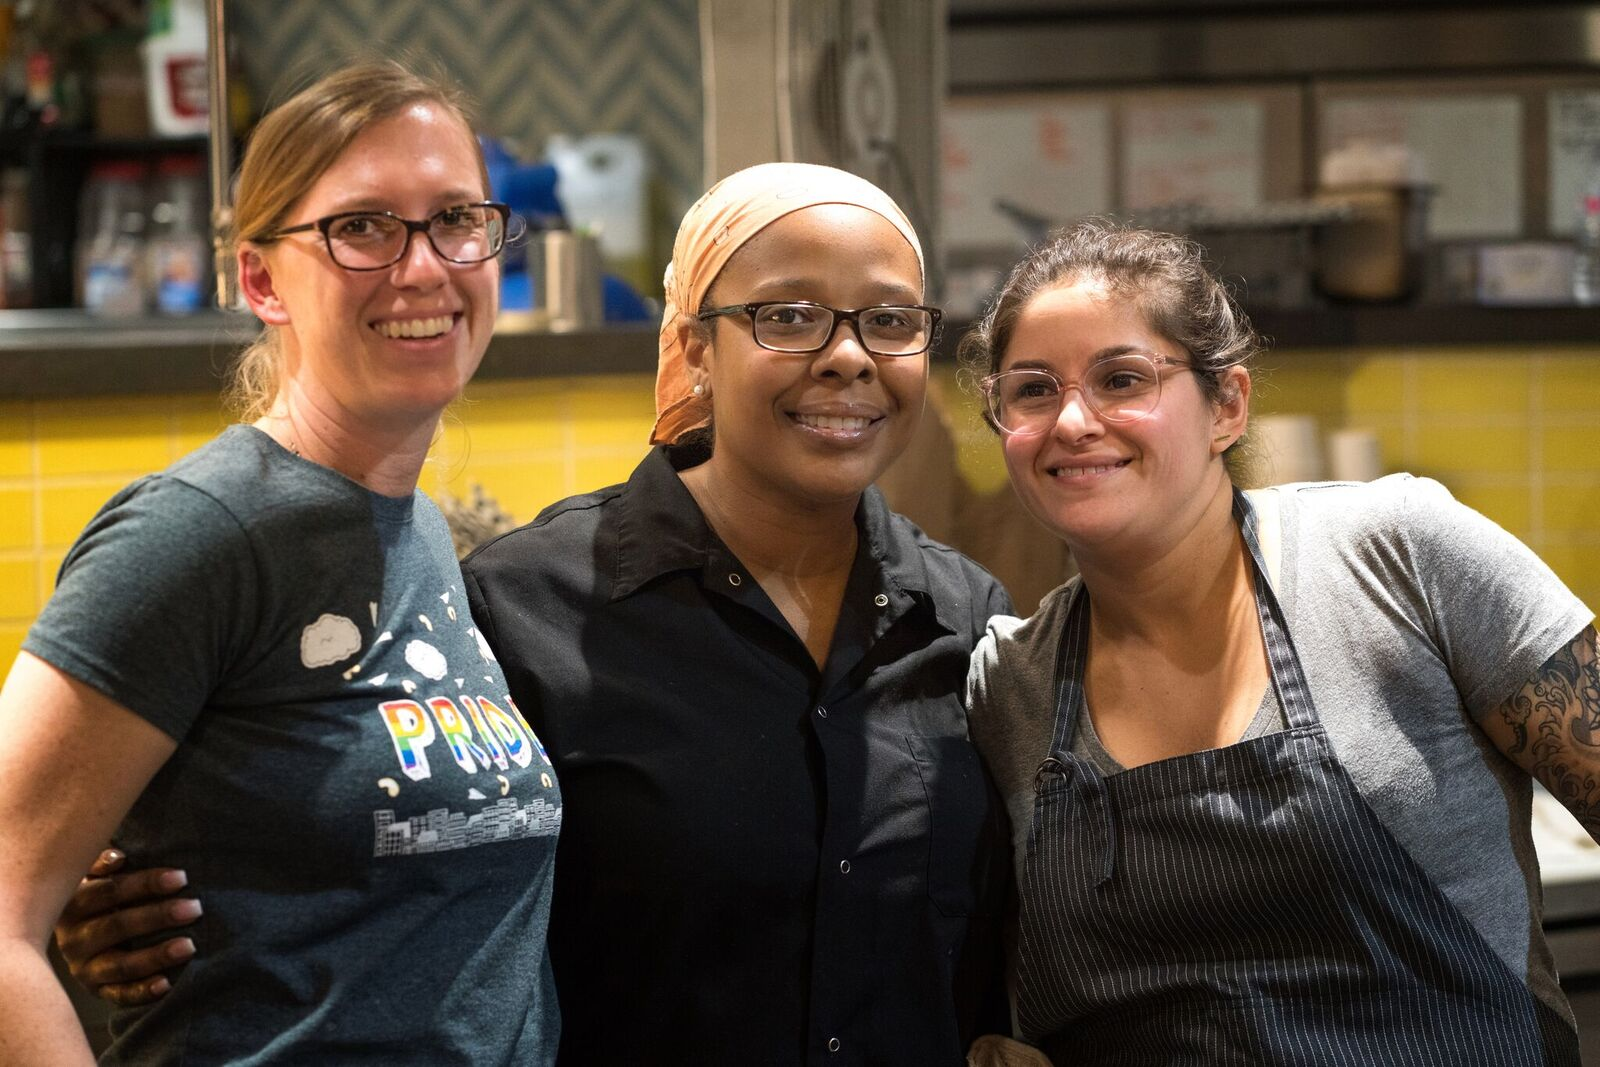 Cocina On The Market Public Market La Cocina Celebrate International Women S Day With